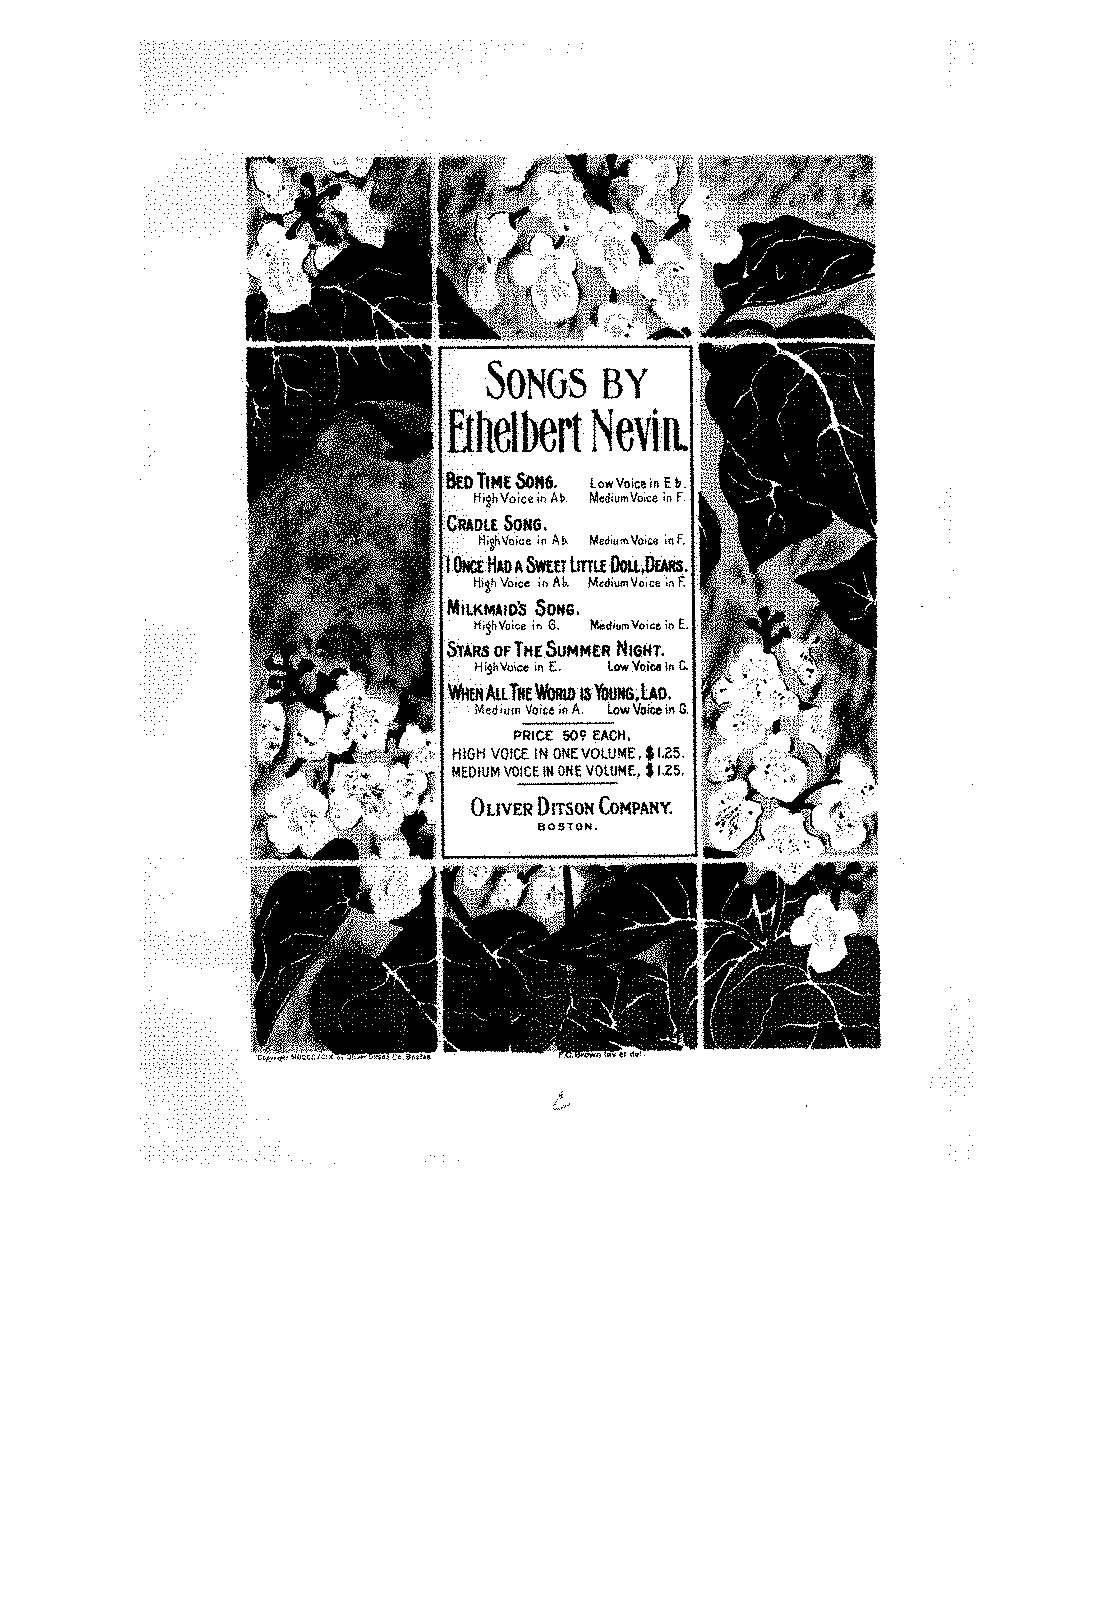 SIBLEY1802.10350.15f2-39087012013431cradle song color cover.pdf